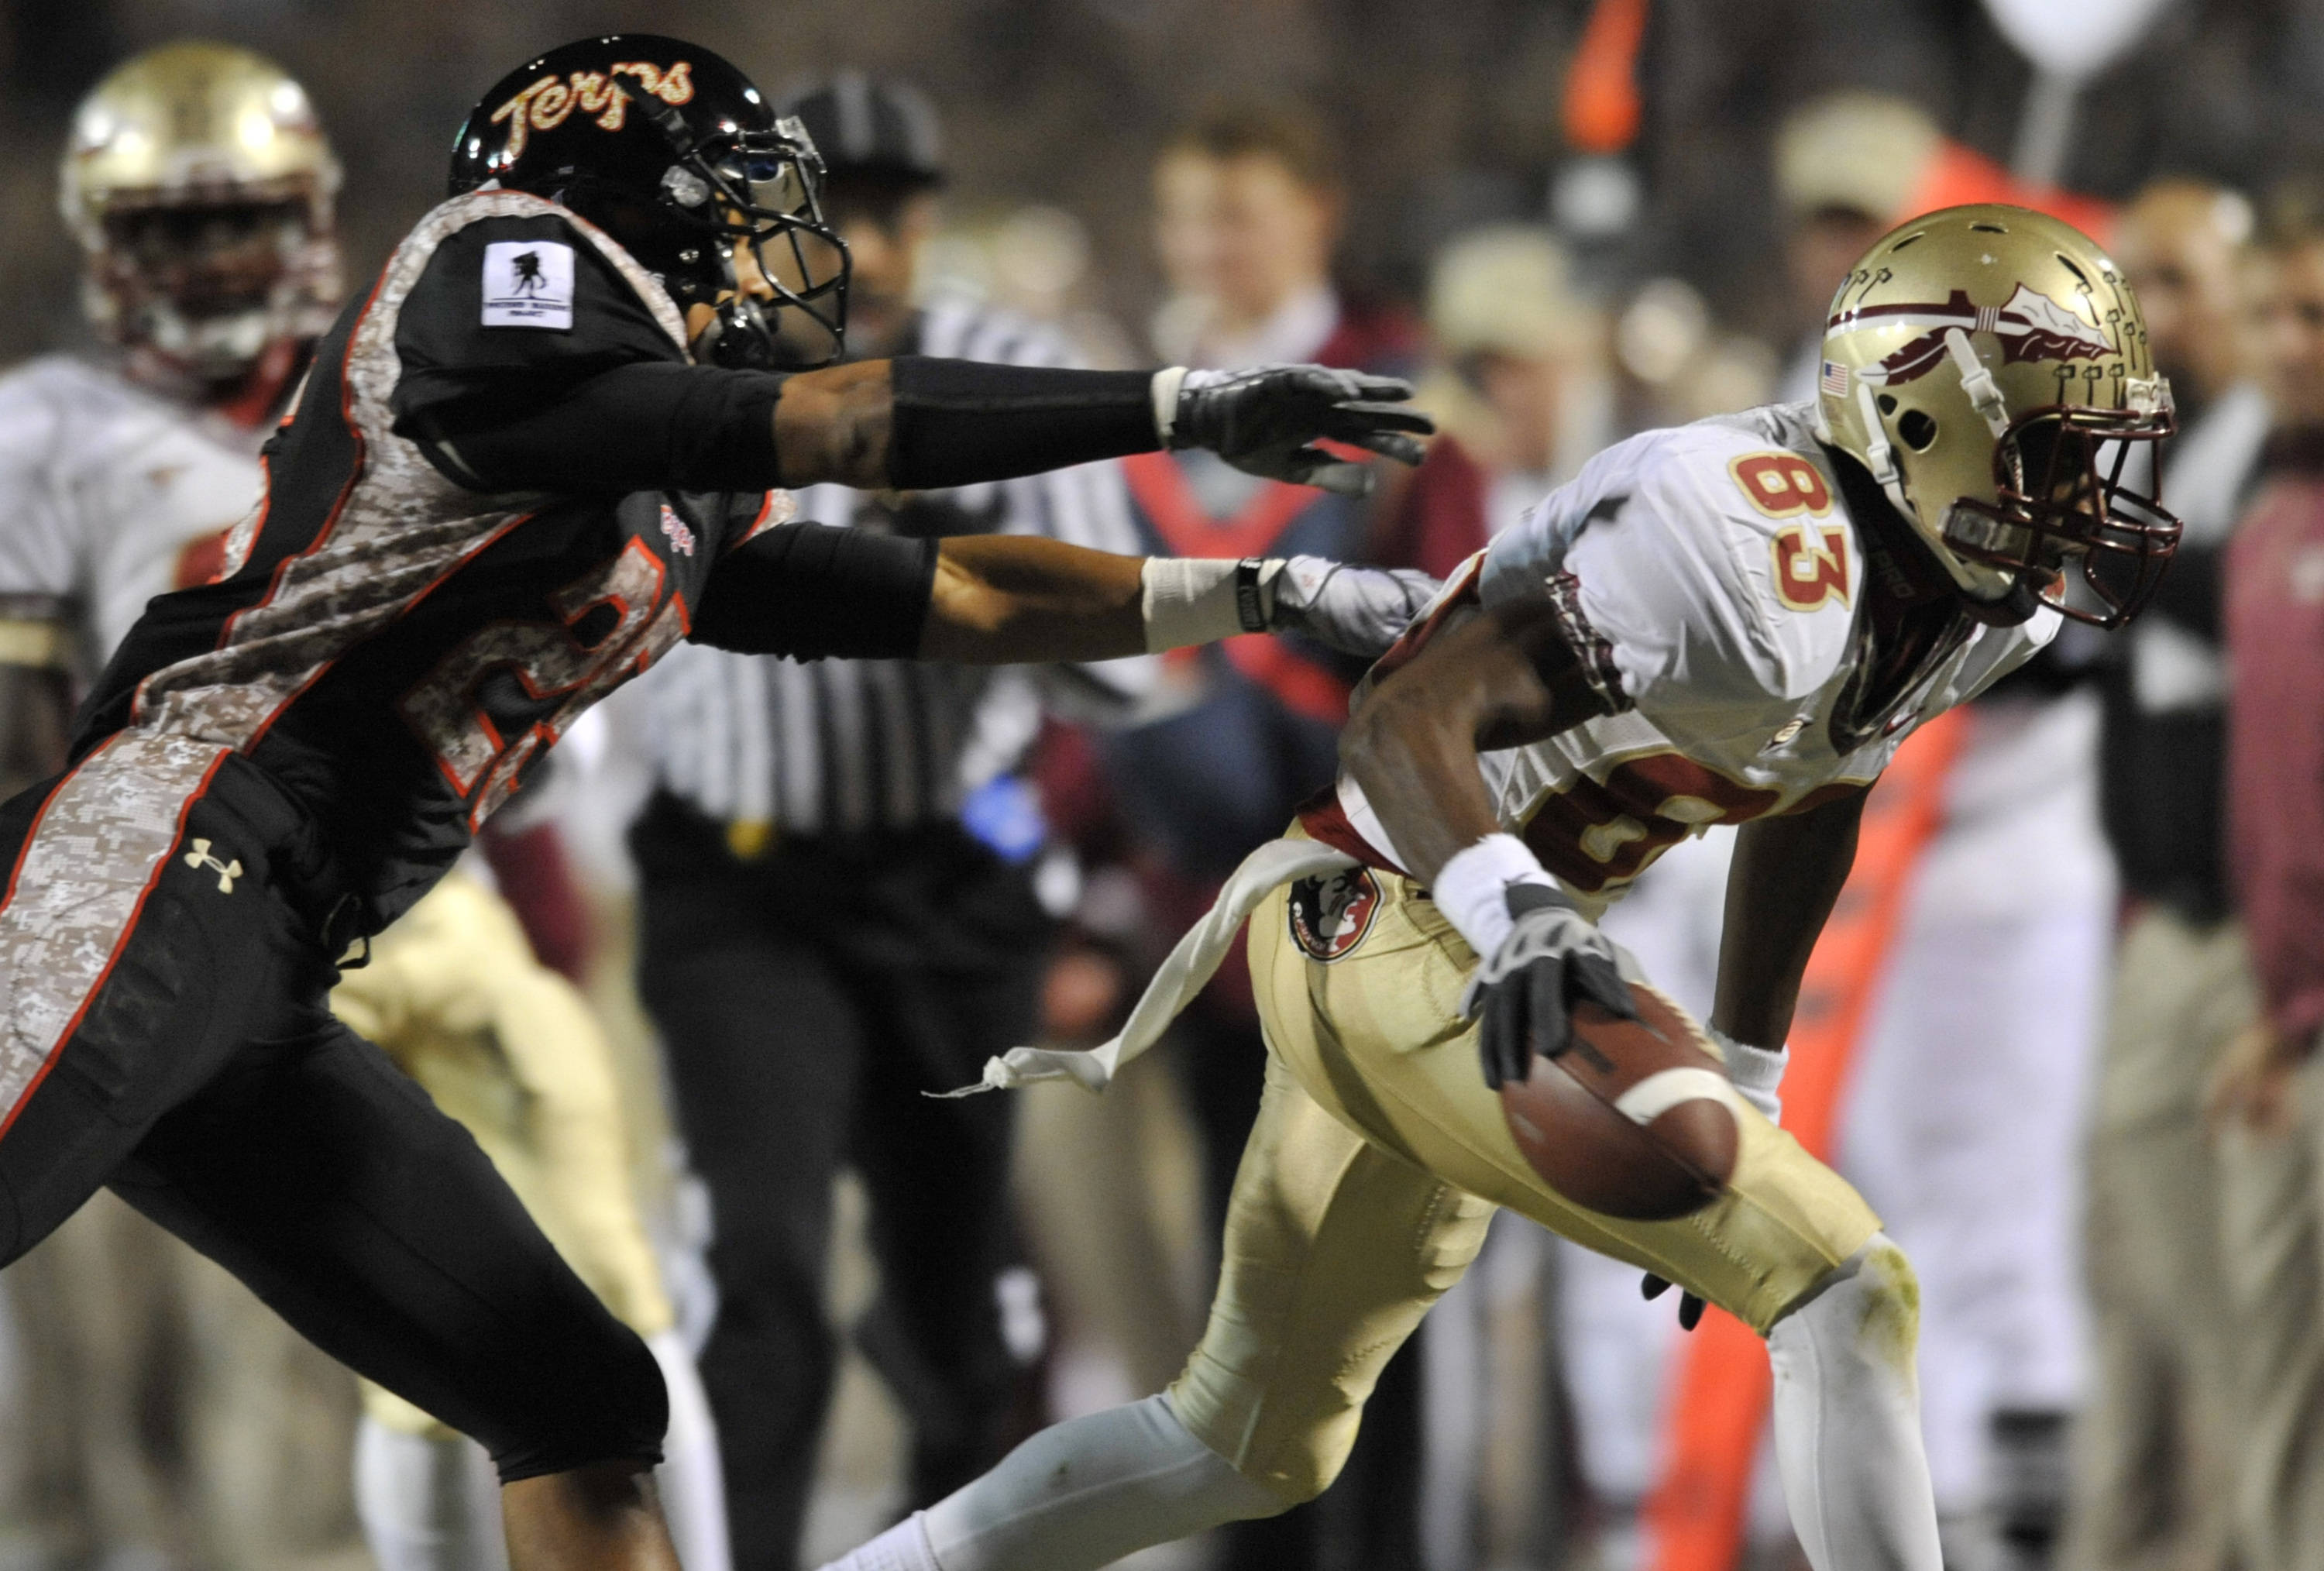 Maryland's Dexter McDougle pushes Florida State's Bert Reed out of bounds during the first half. (AP Photo/Gail Burton)